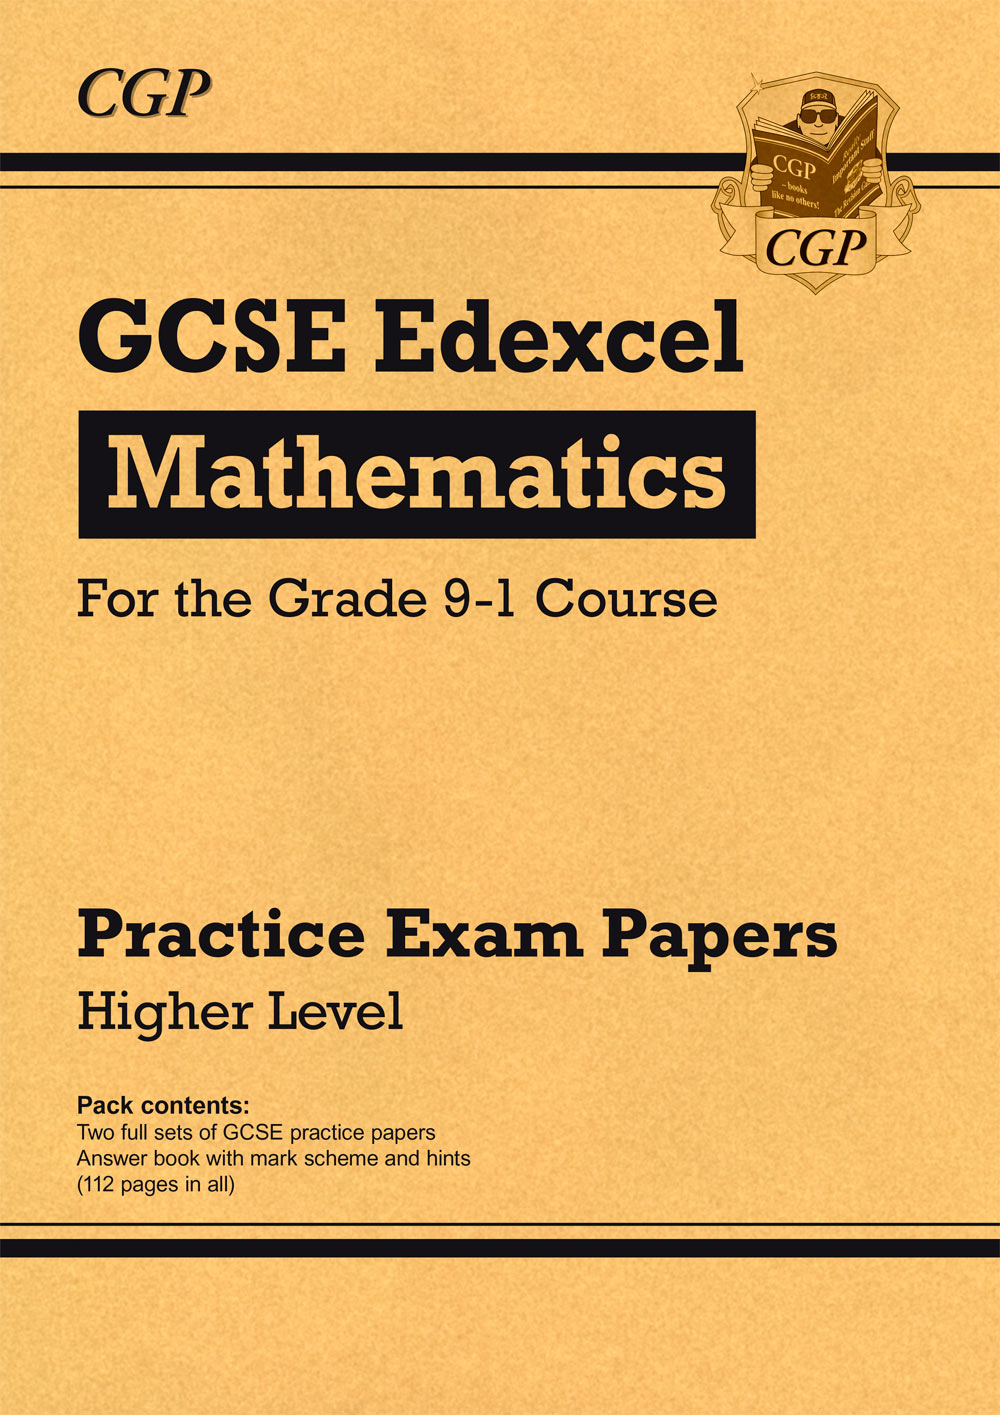 MXHP43 - New GCSE Maths Edexcel Practice Papers: Higher - for the Grade 9-1 Course